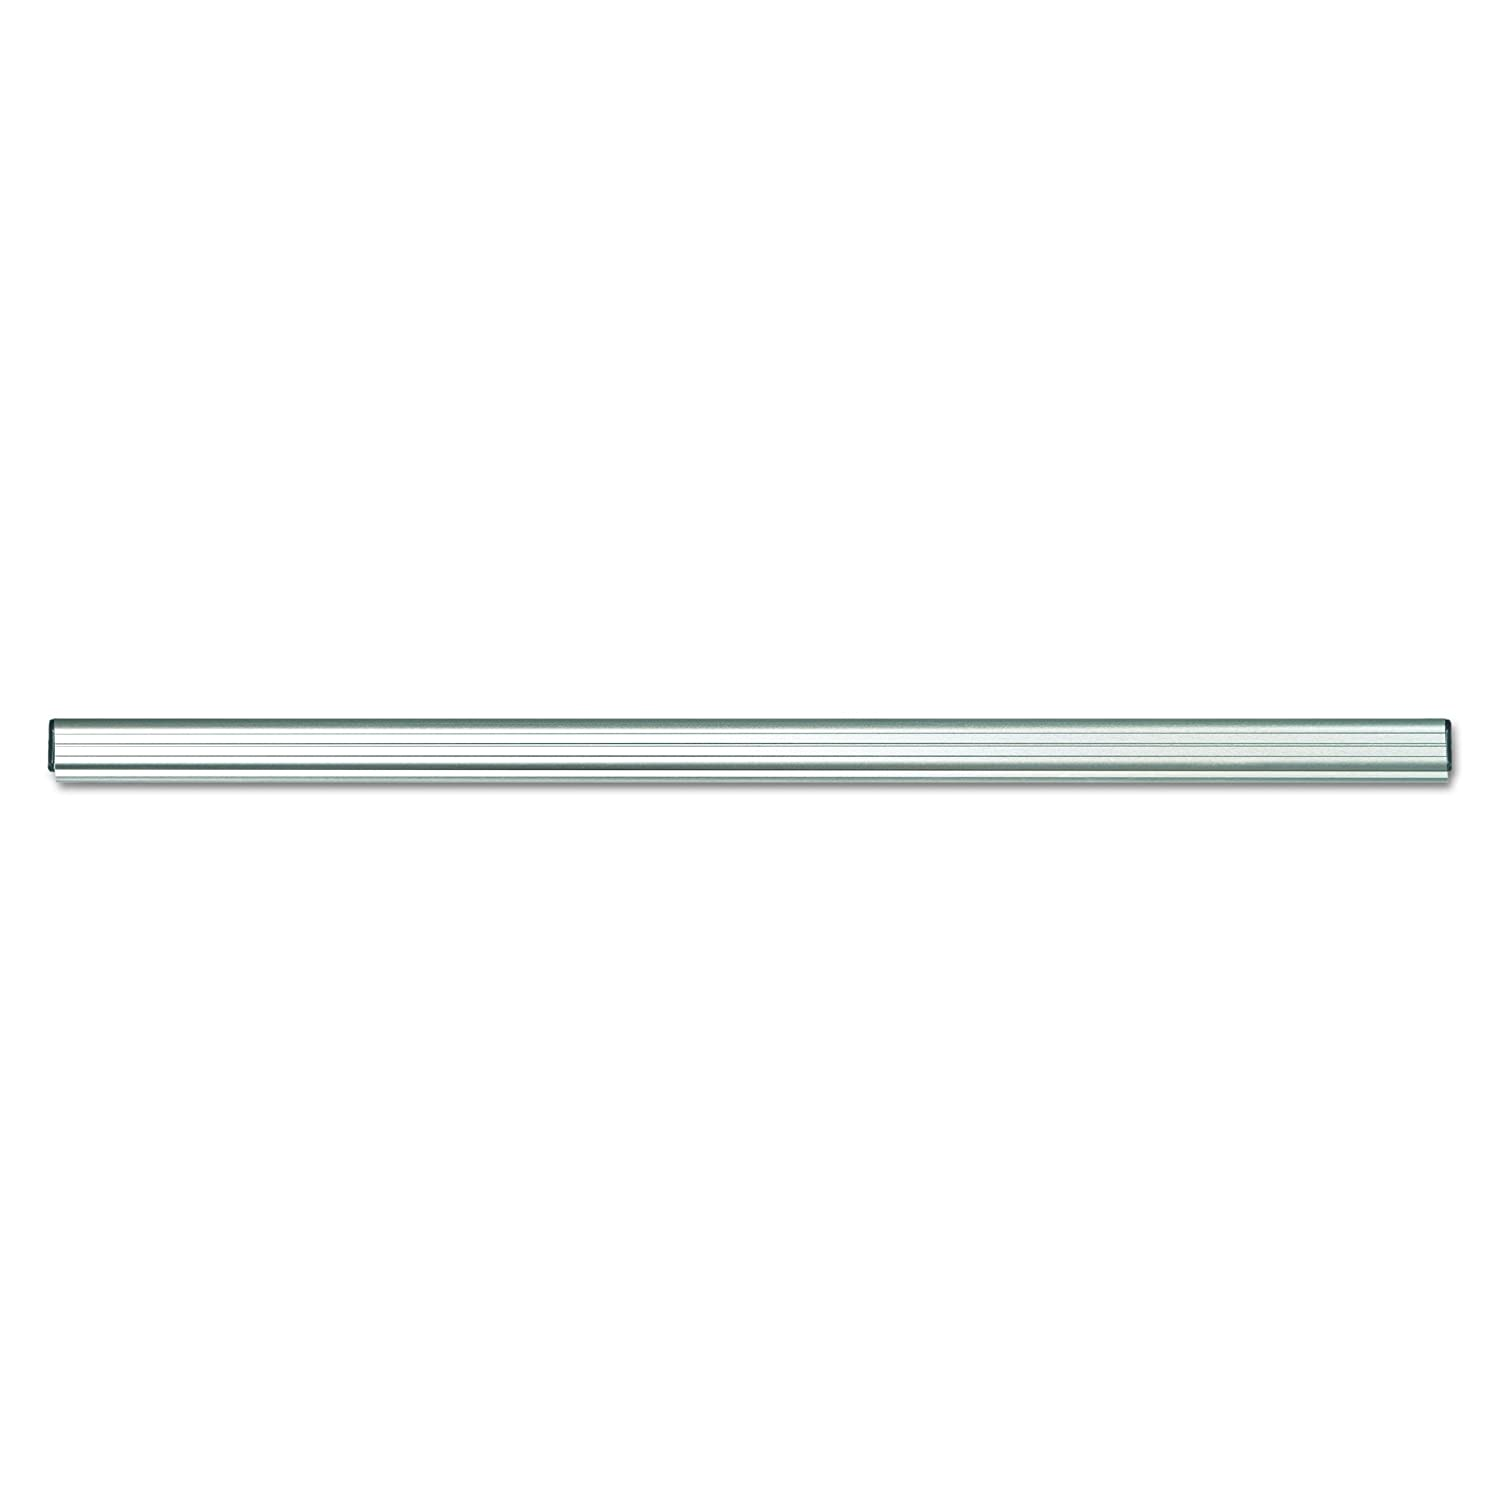 Advantus Grip-A-Strip Display Rail, Mid-Size, 3 Feet Long, Satin Finish Aluminum (2005) ADVANTUS CORPORATION